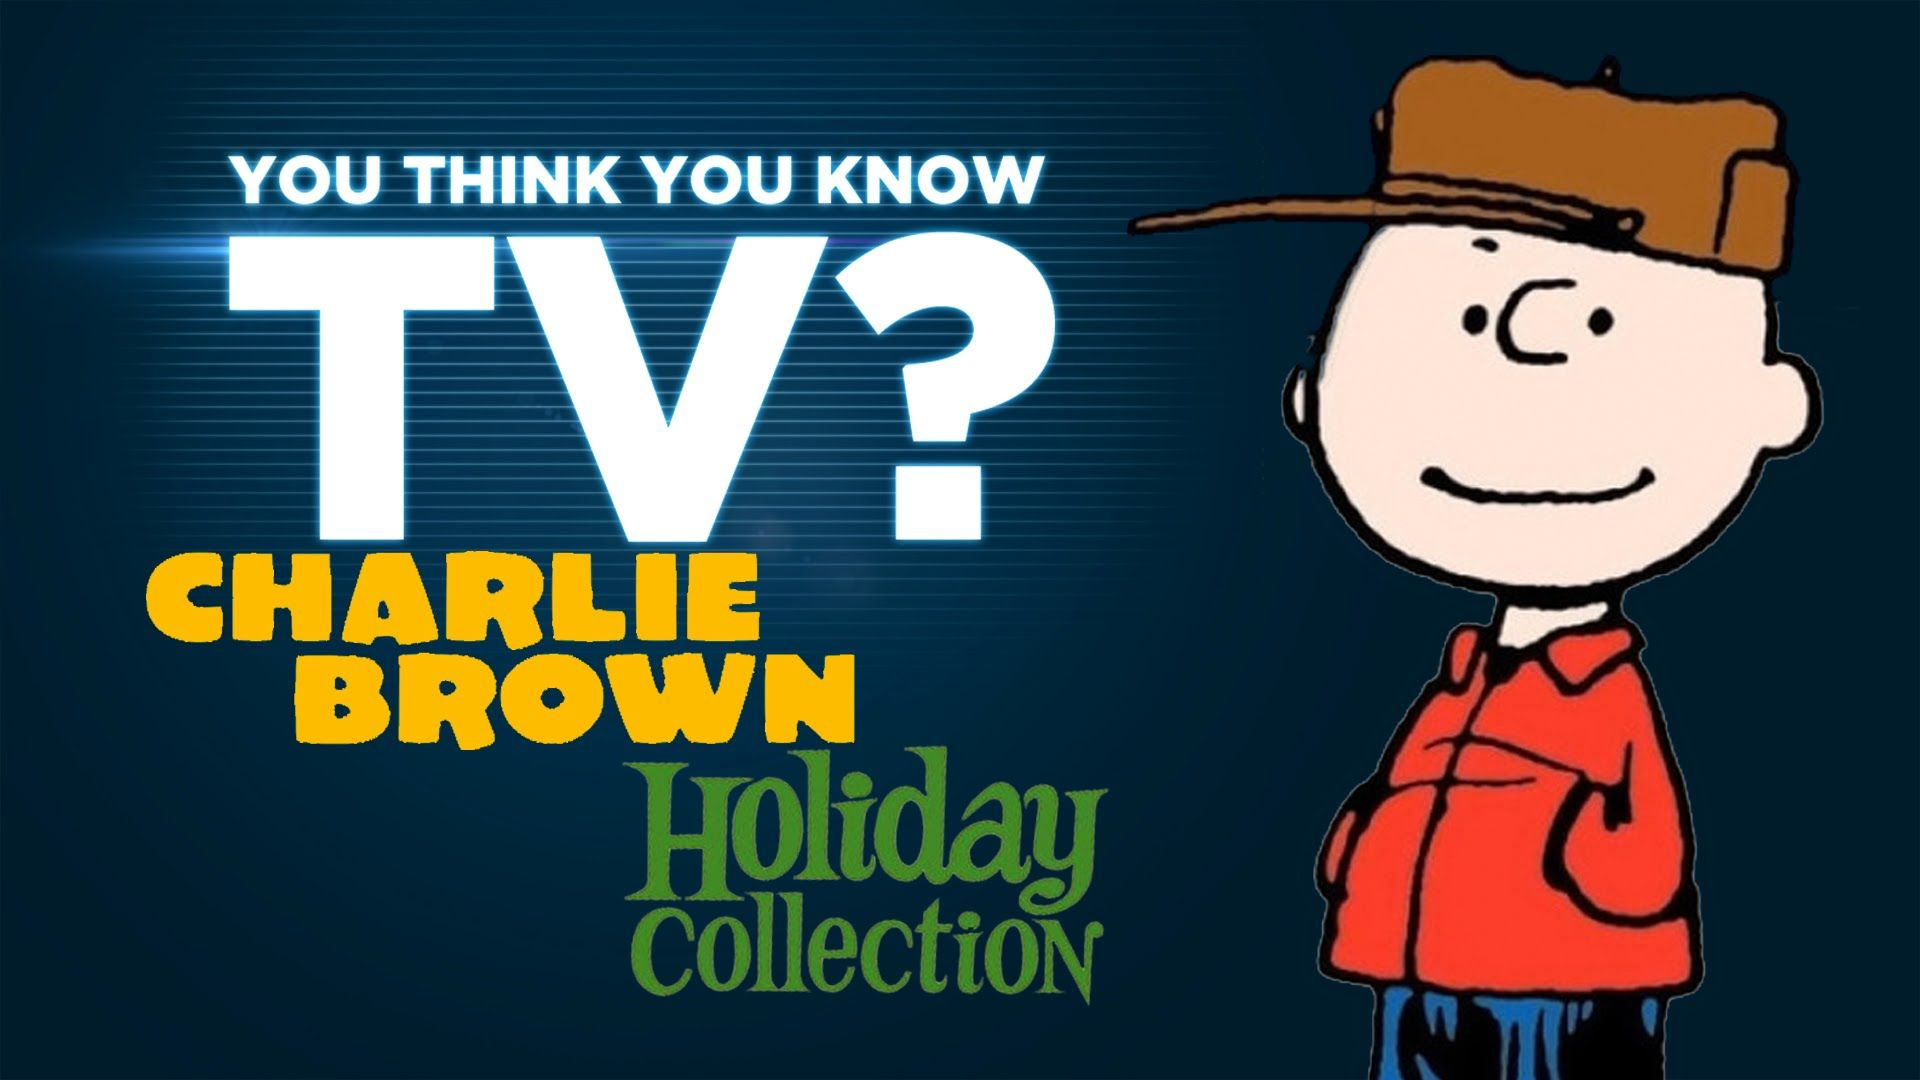 Charlie Brown - You Think You Know TV?